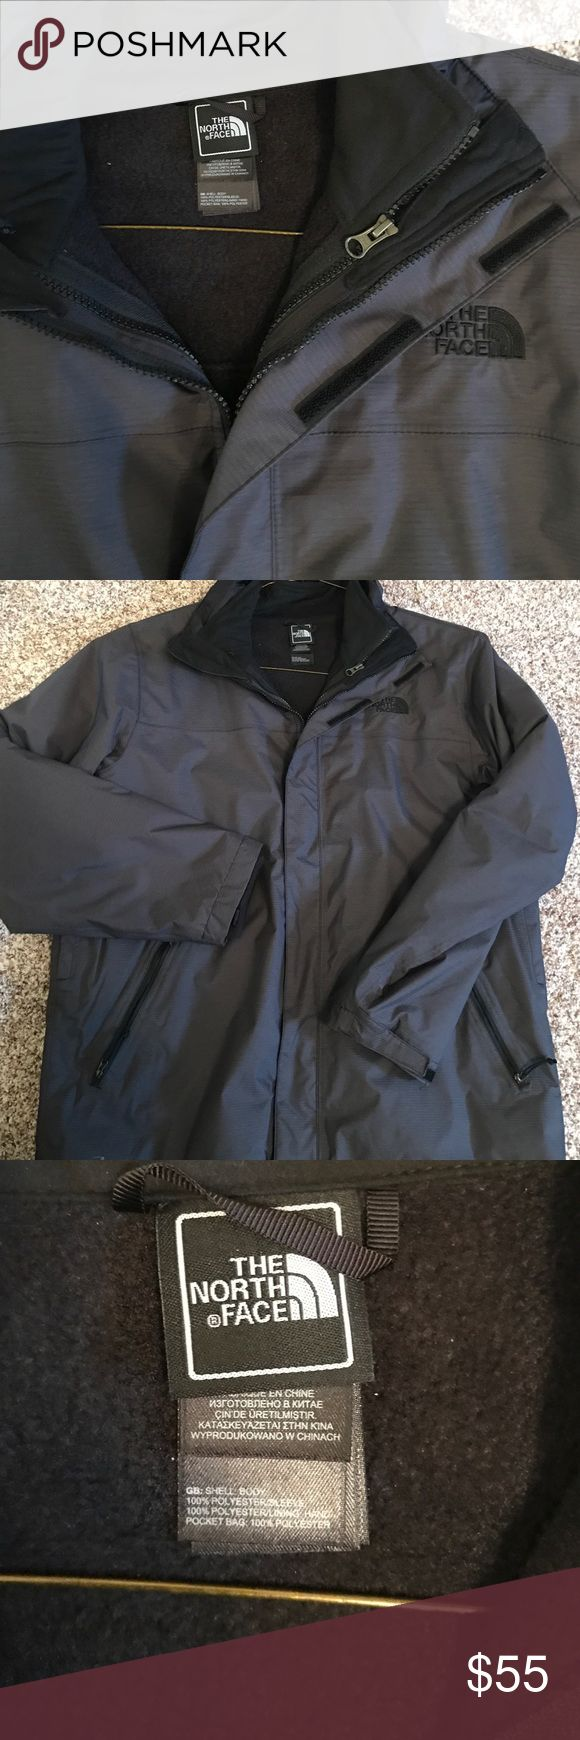 North face men's ski jacket size large worn once!! North face men's like new ski jacket. Worn only one time!! Like new. Very warm. Size large offers welcome!!! North Face Jackets & Coats Ski & Snowboard